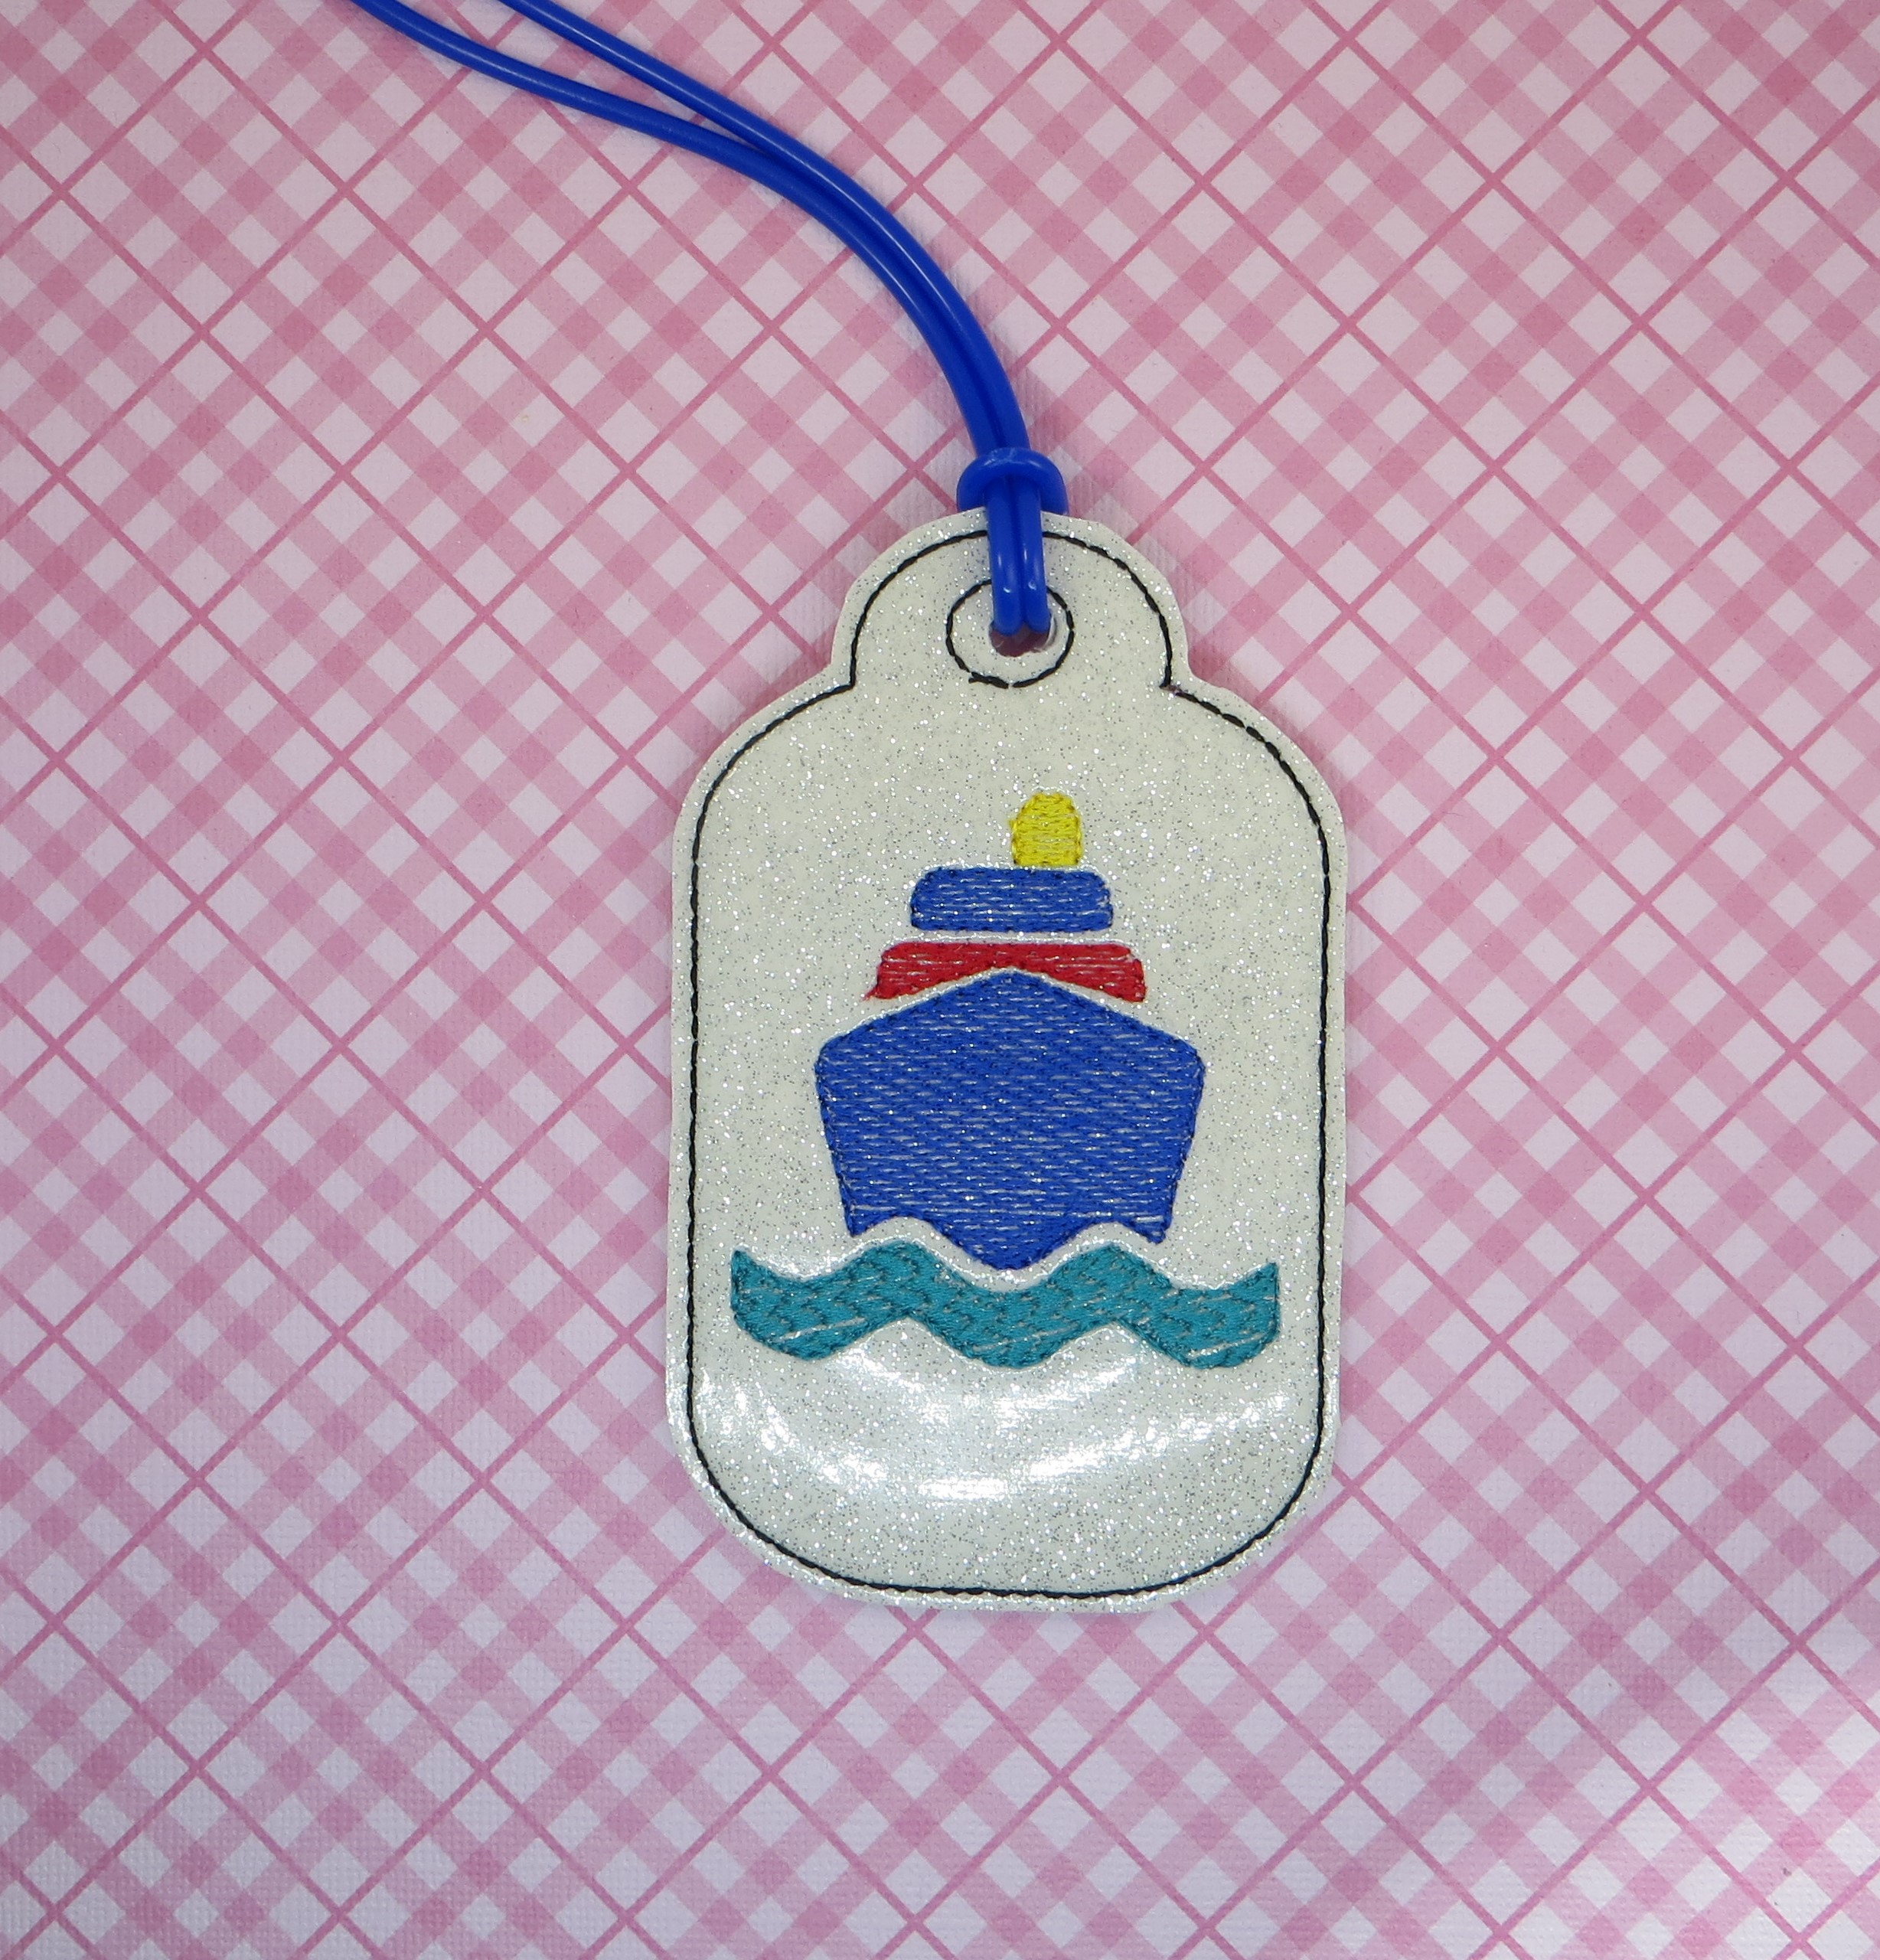 Cruise Theme Luggage Tag Embroidery Design